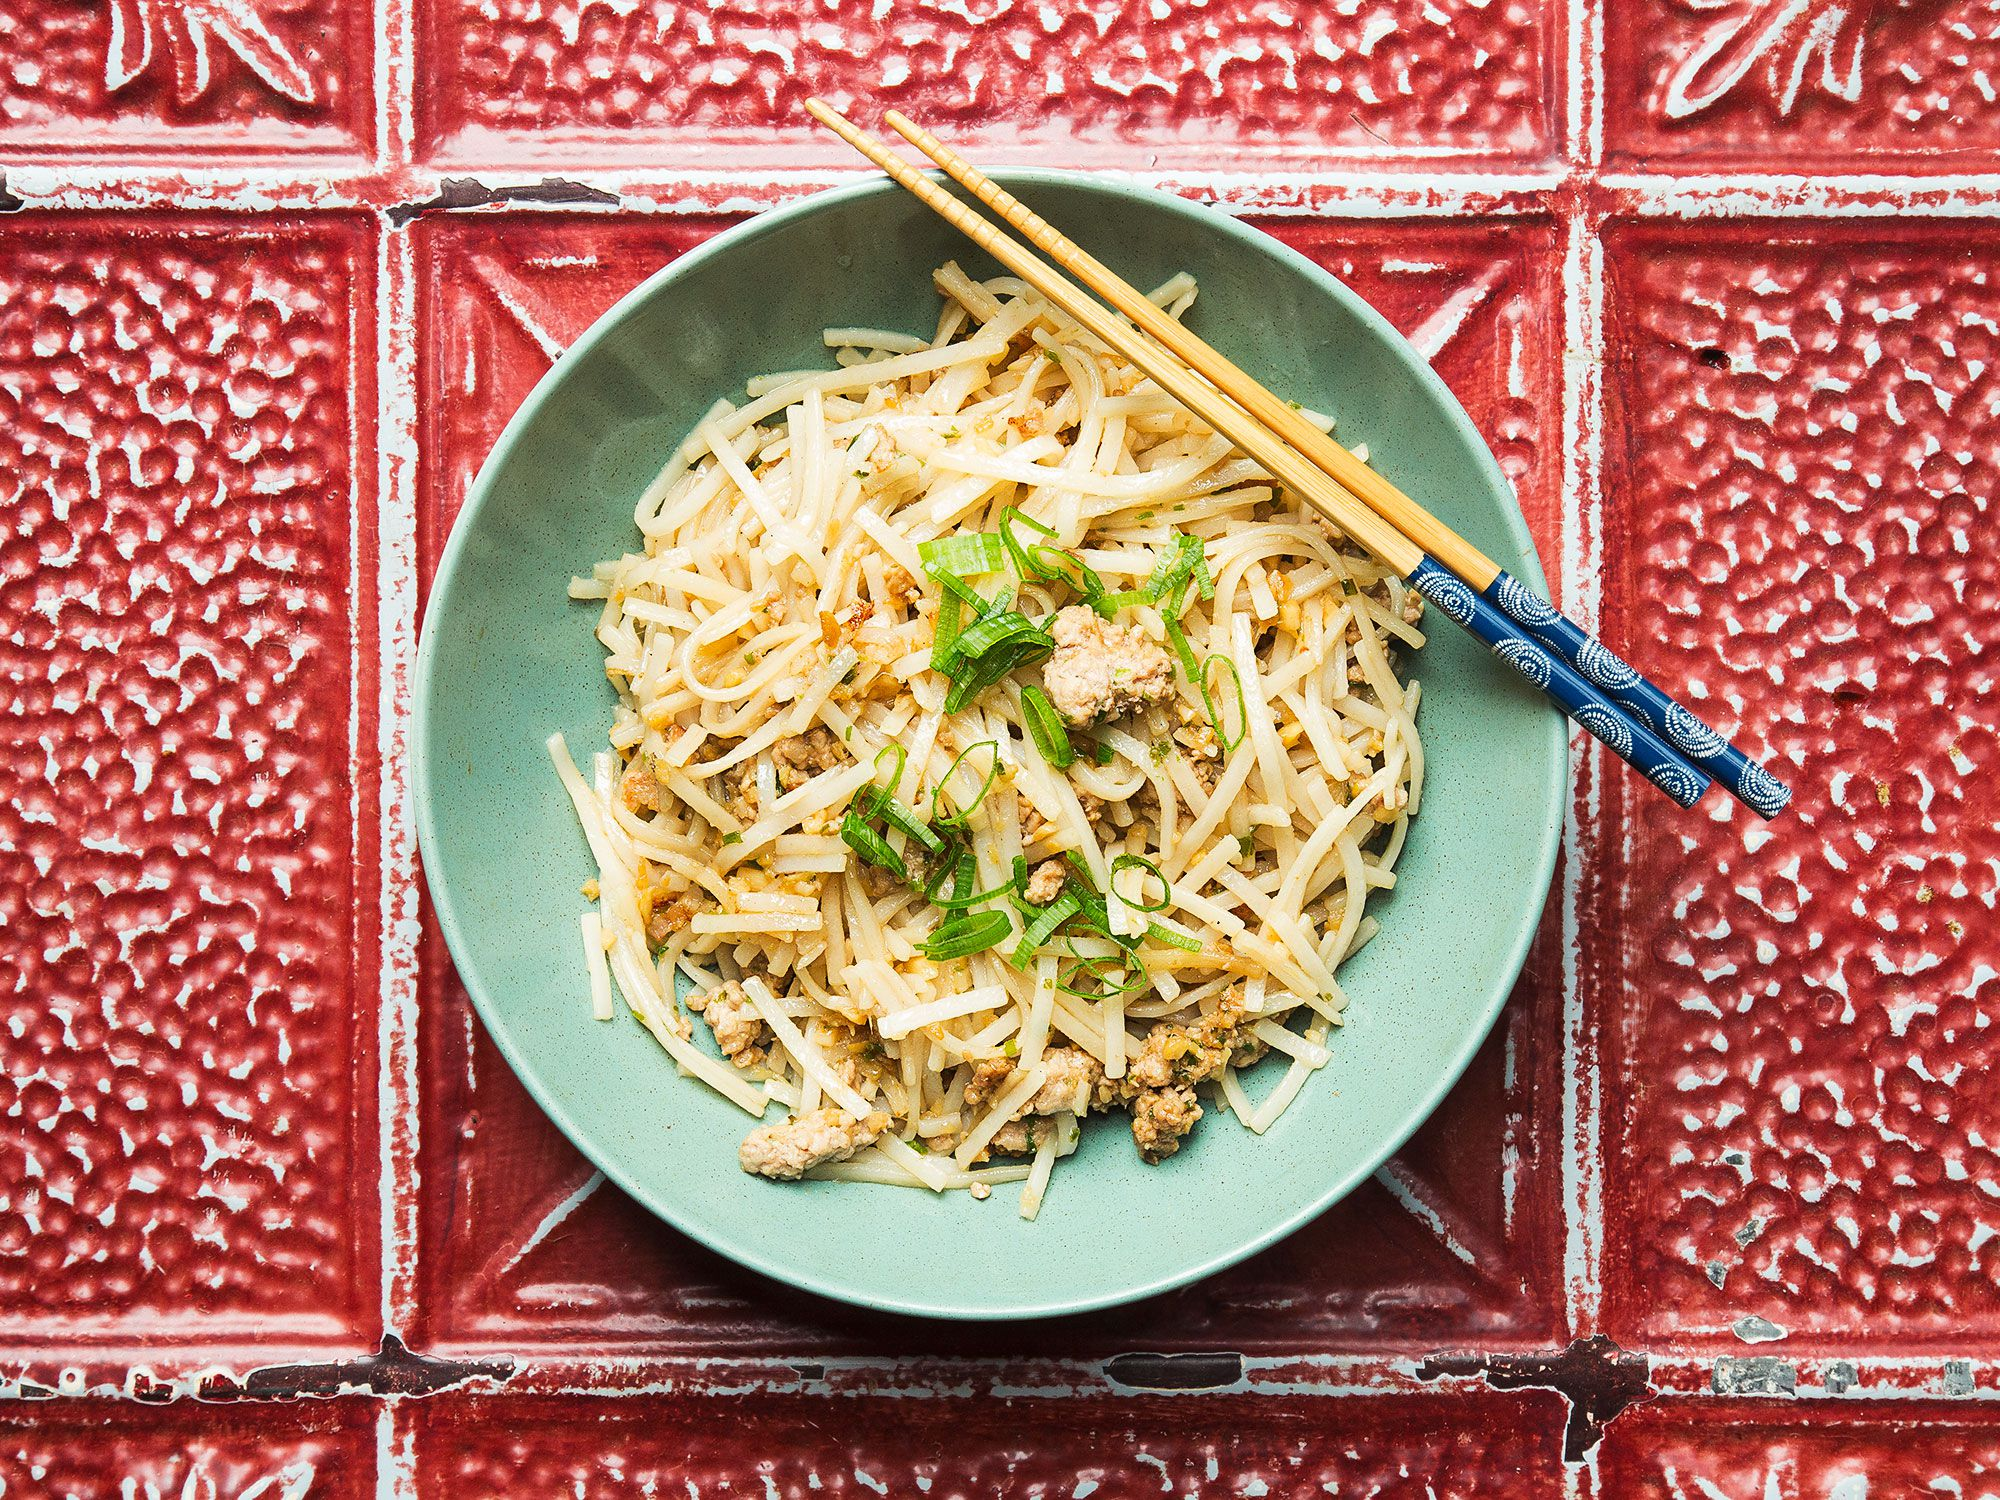 """Any Chinese noodle—rice, wheat, flat, thin, or broad—can be used in this simple stir-fry from author Francis Lam; it's one of his favorite breakfast dishes. <a href=""""http://www.saveur.com/article/recipes/stir-fried-breakfast-noodles"""">Get the recipe for Stir-Fried Breakfast Noodles »</a>"""